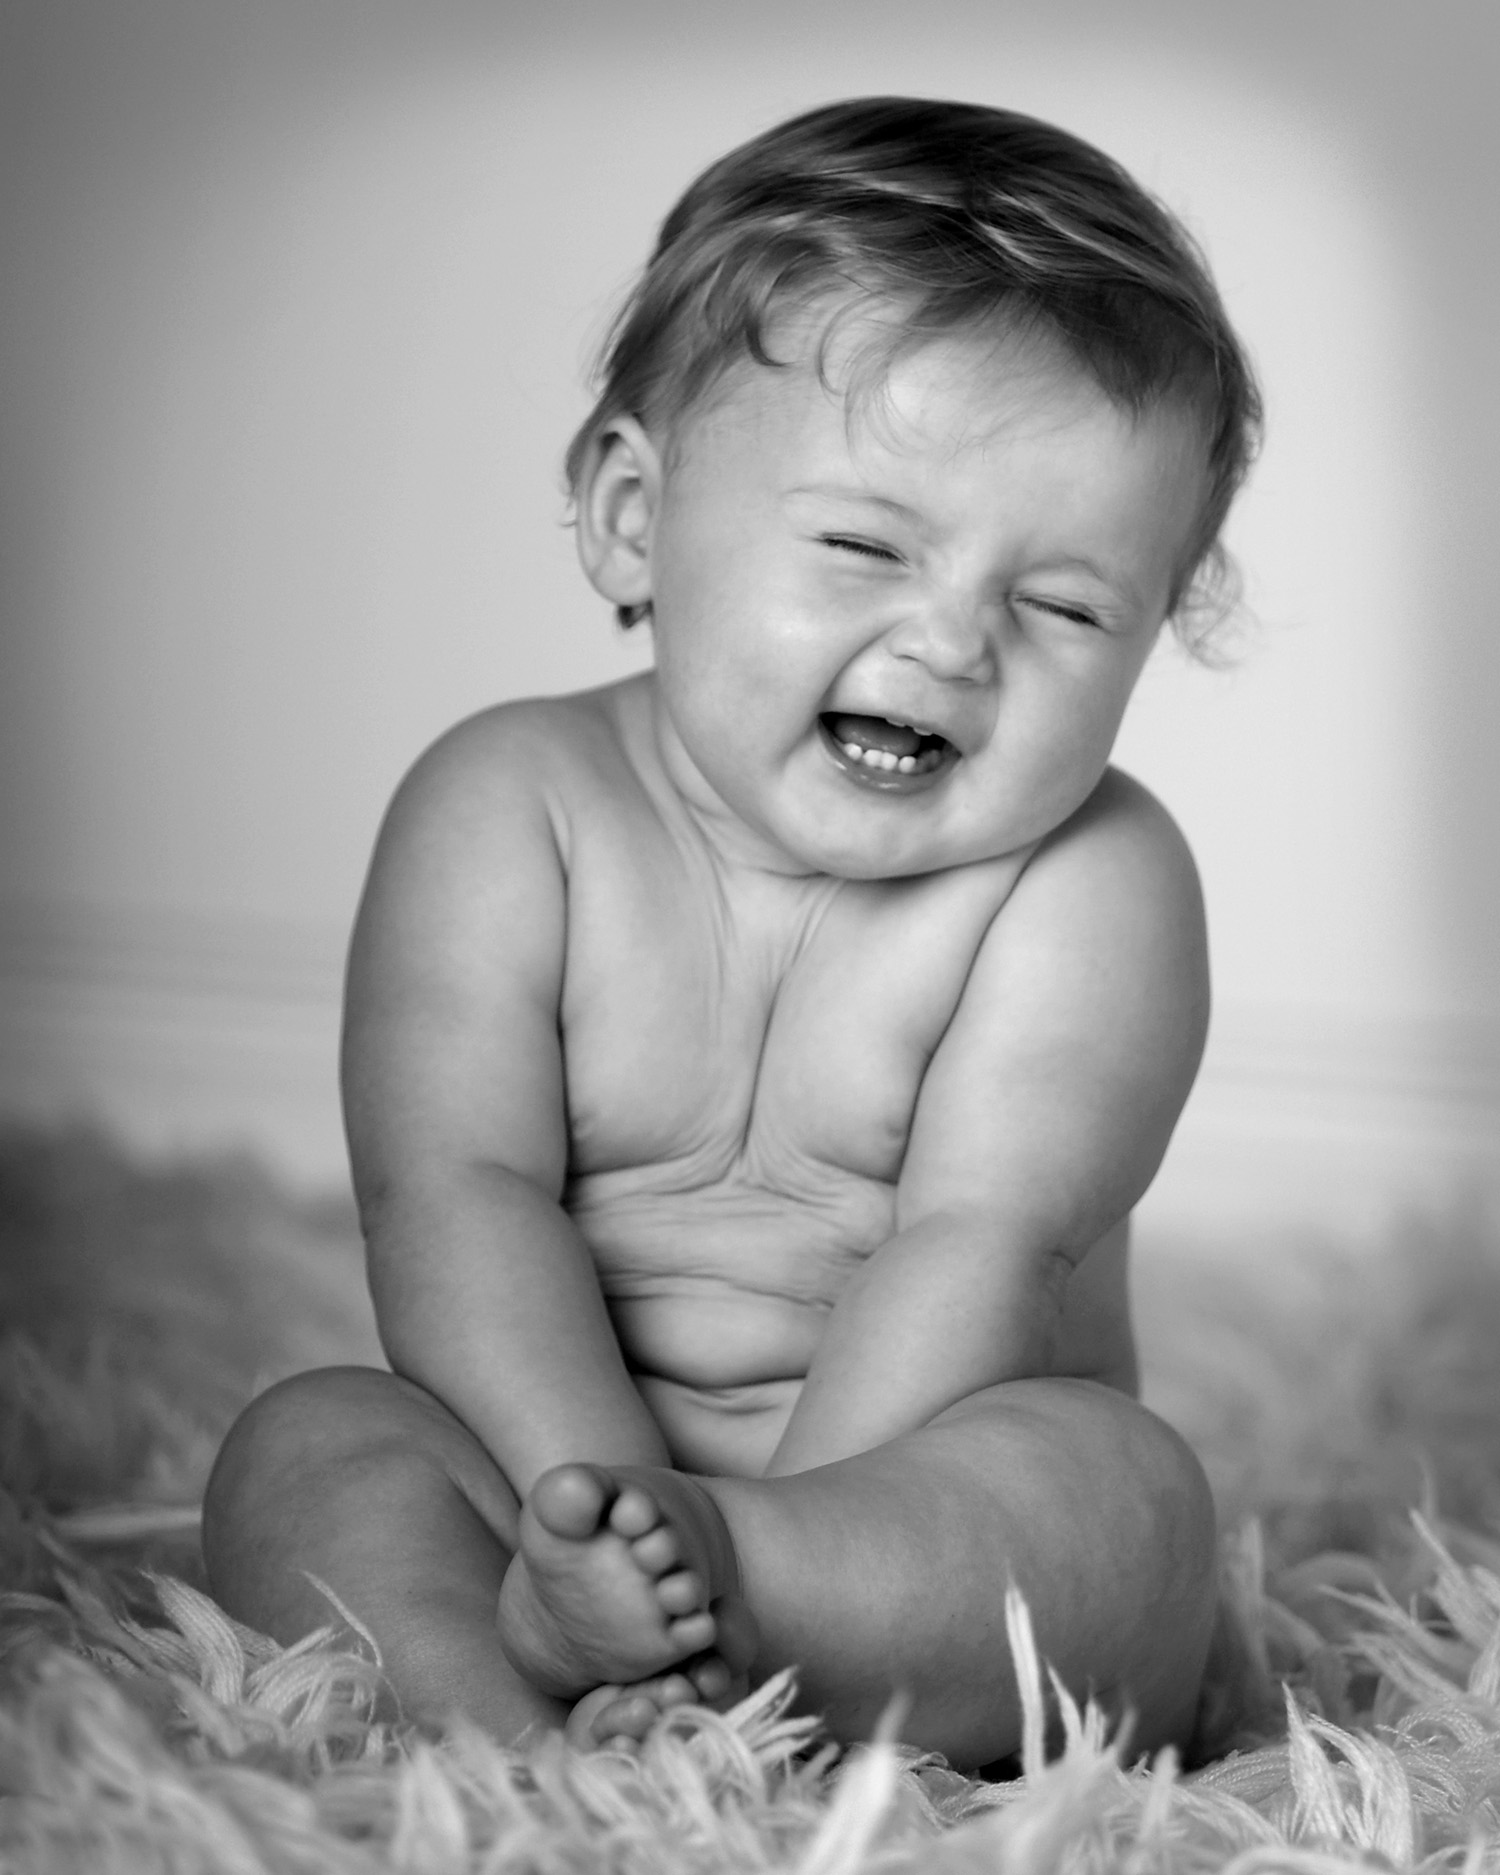 Download Cute Babies Laughing Wallpapers Gallery